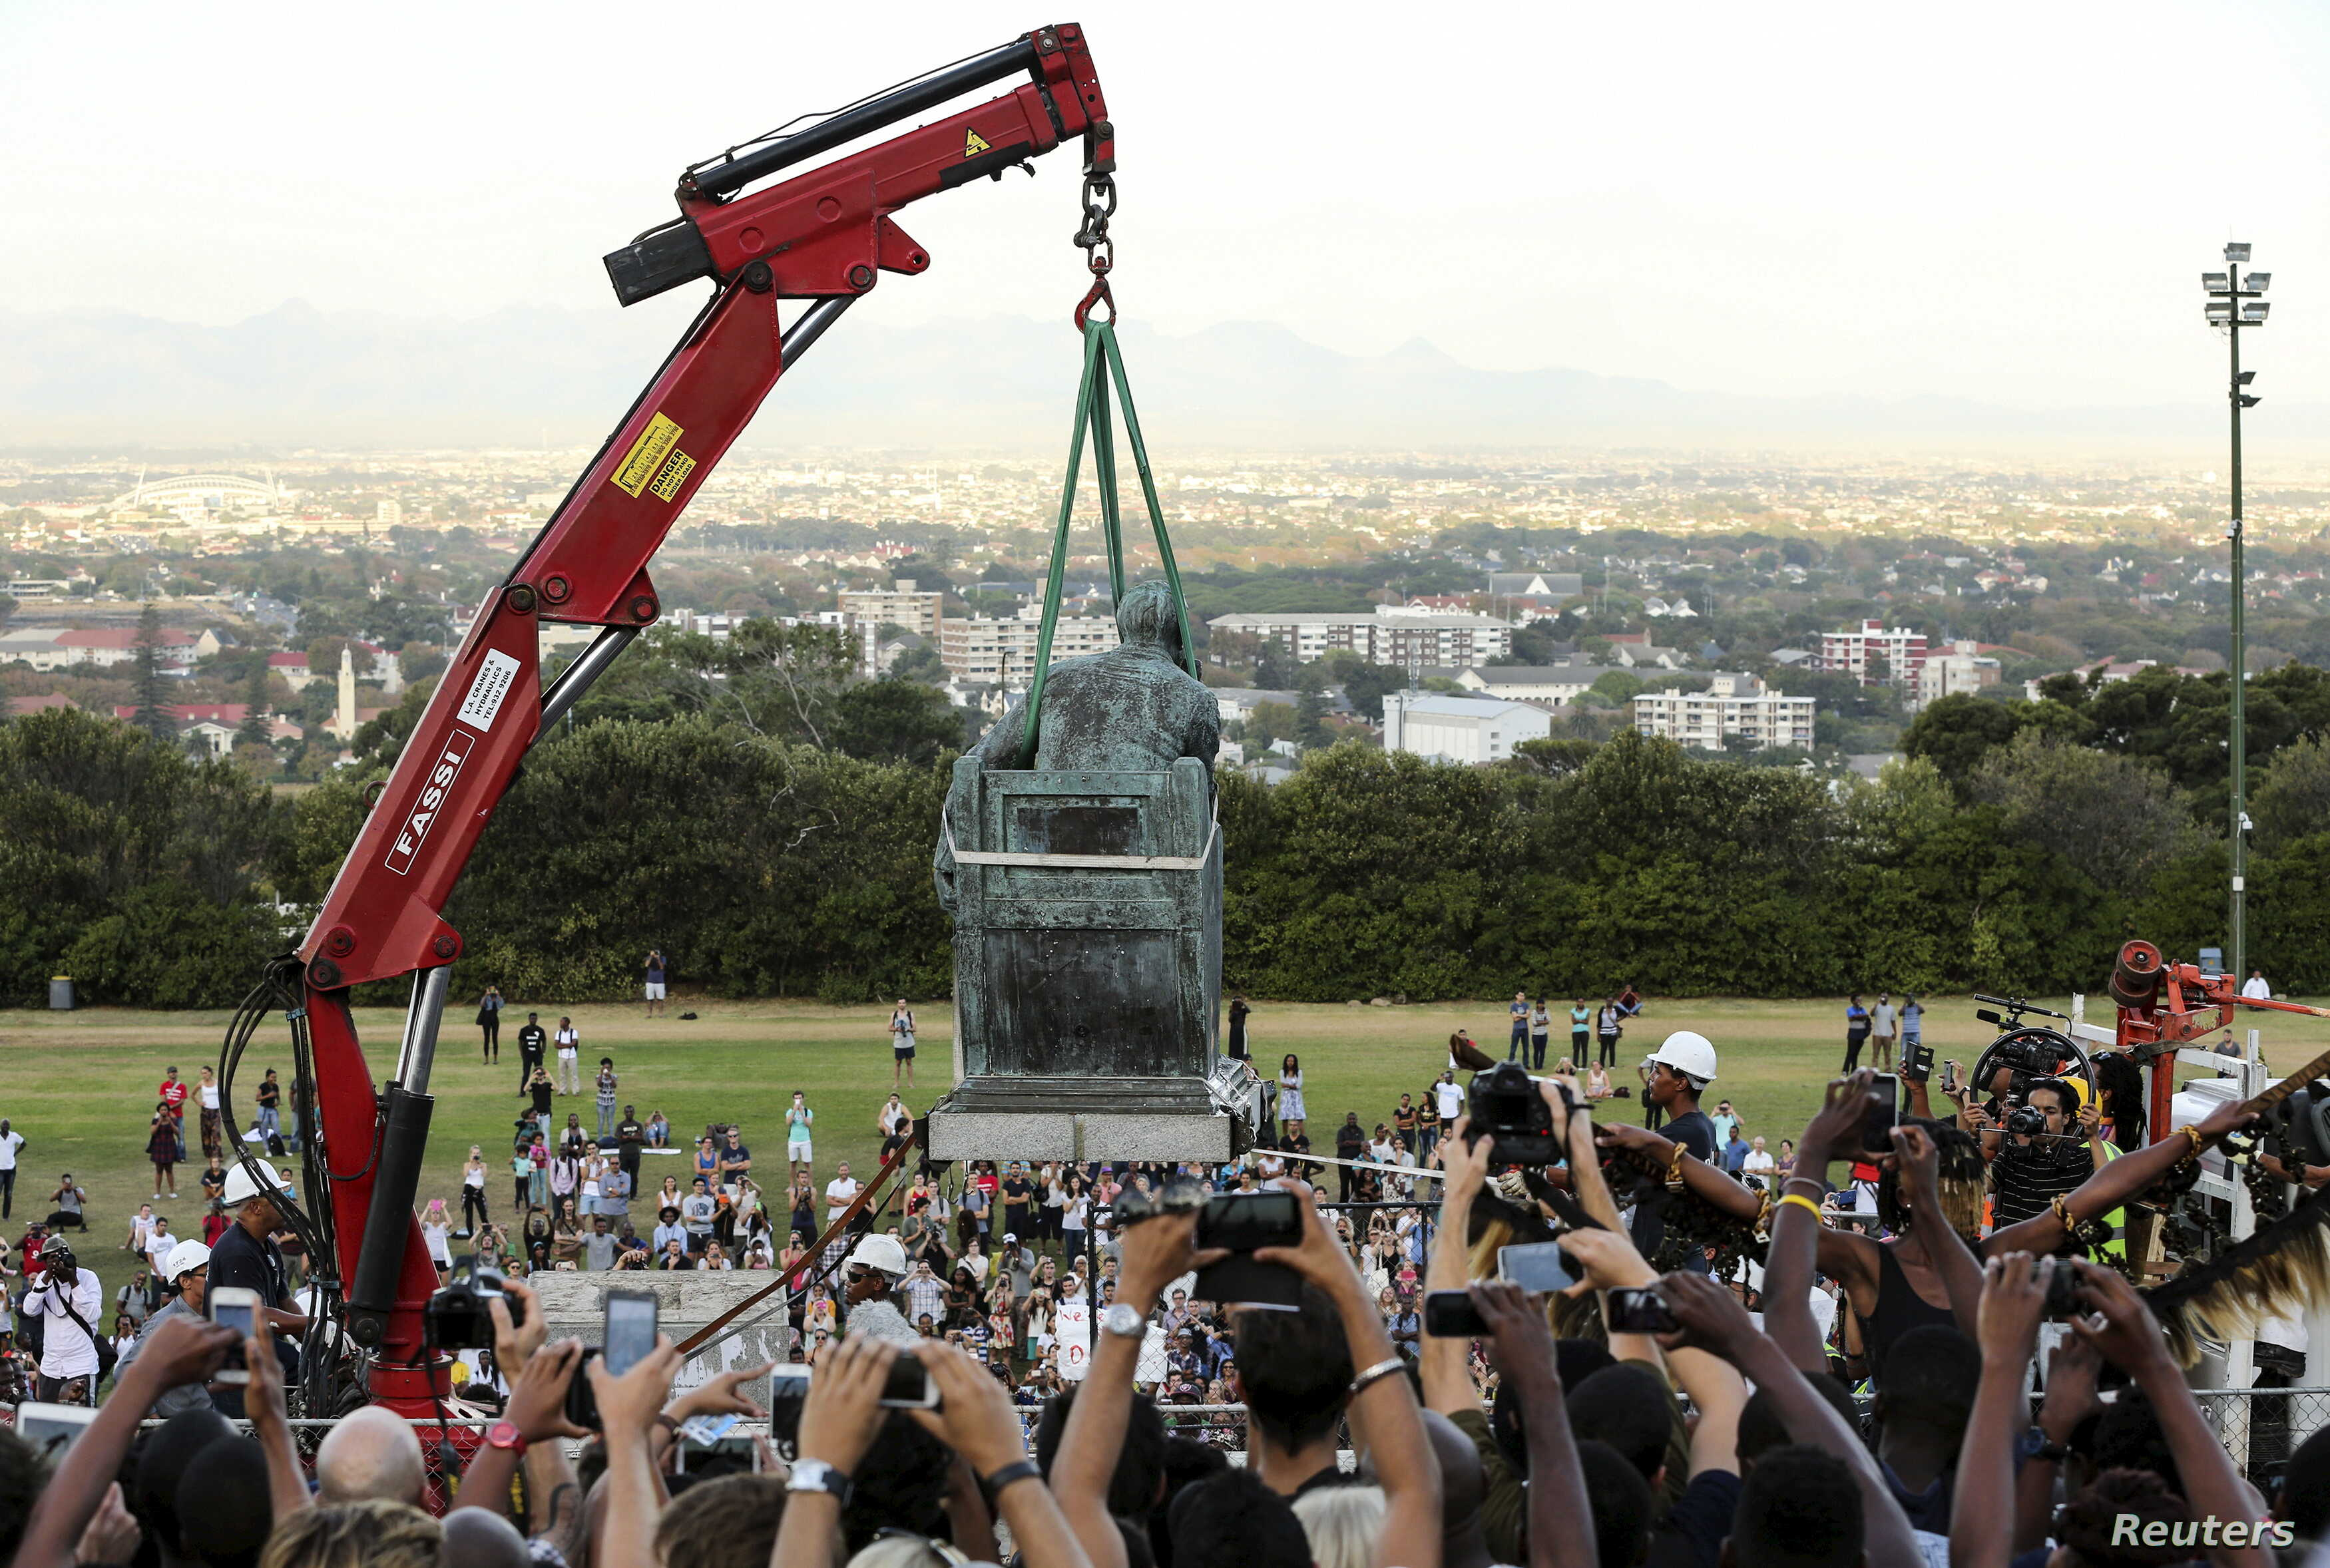 Students cheer as the statue of Cecil John Rhodes is removed from the University of Cape Town (UCT) in South Africa, April 9, 2015.